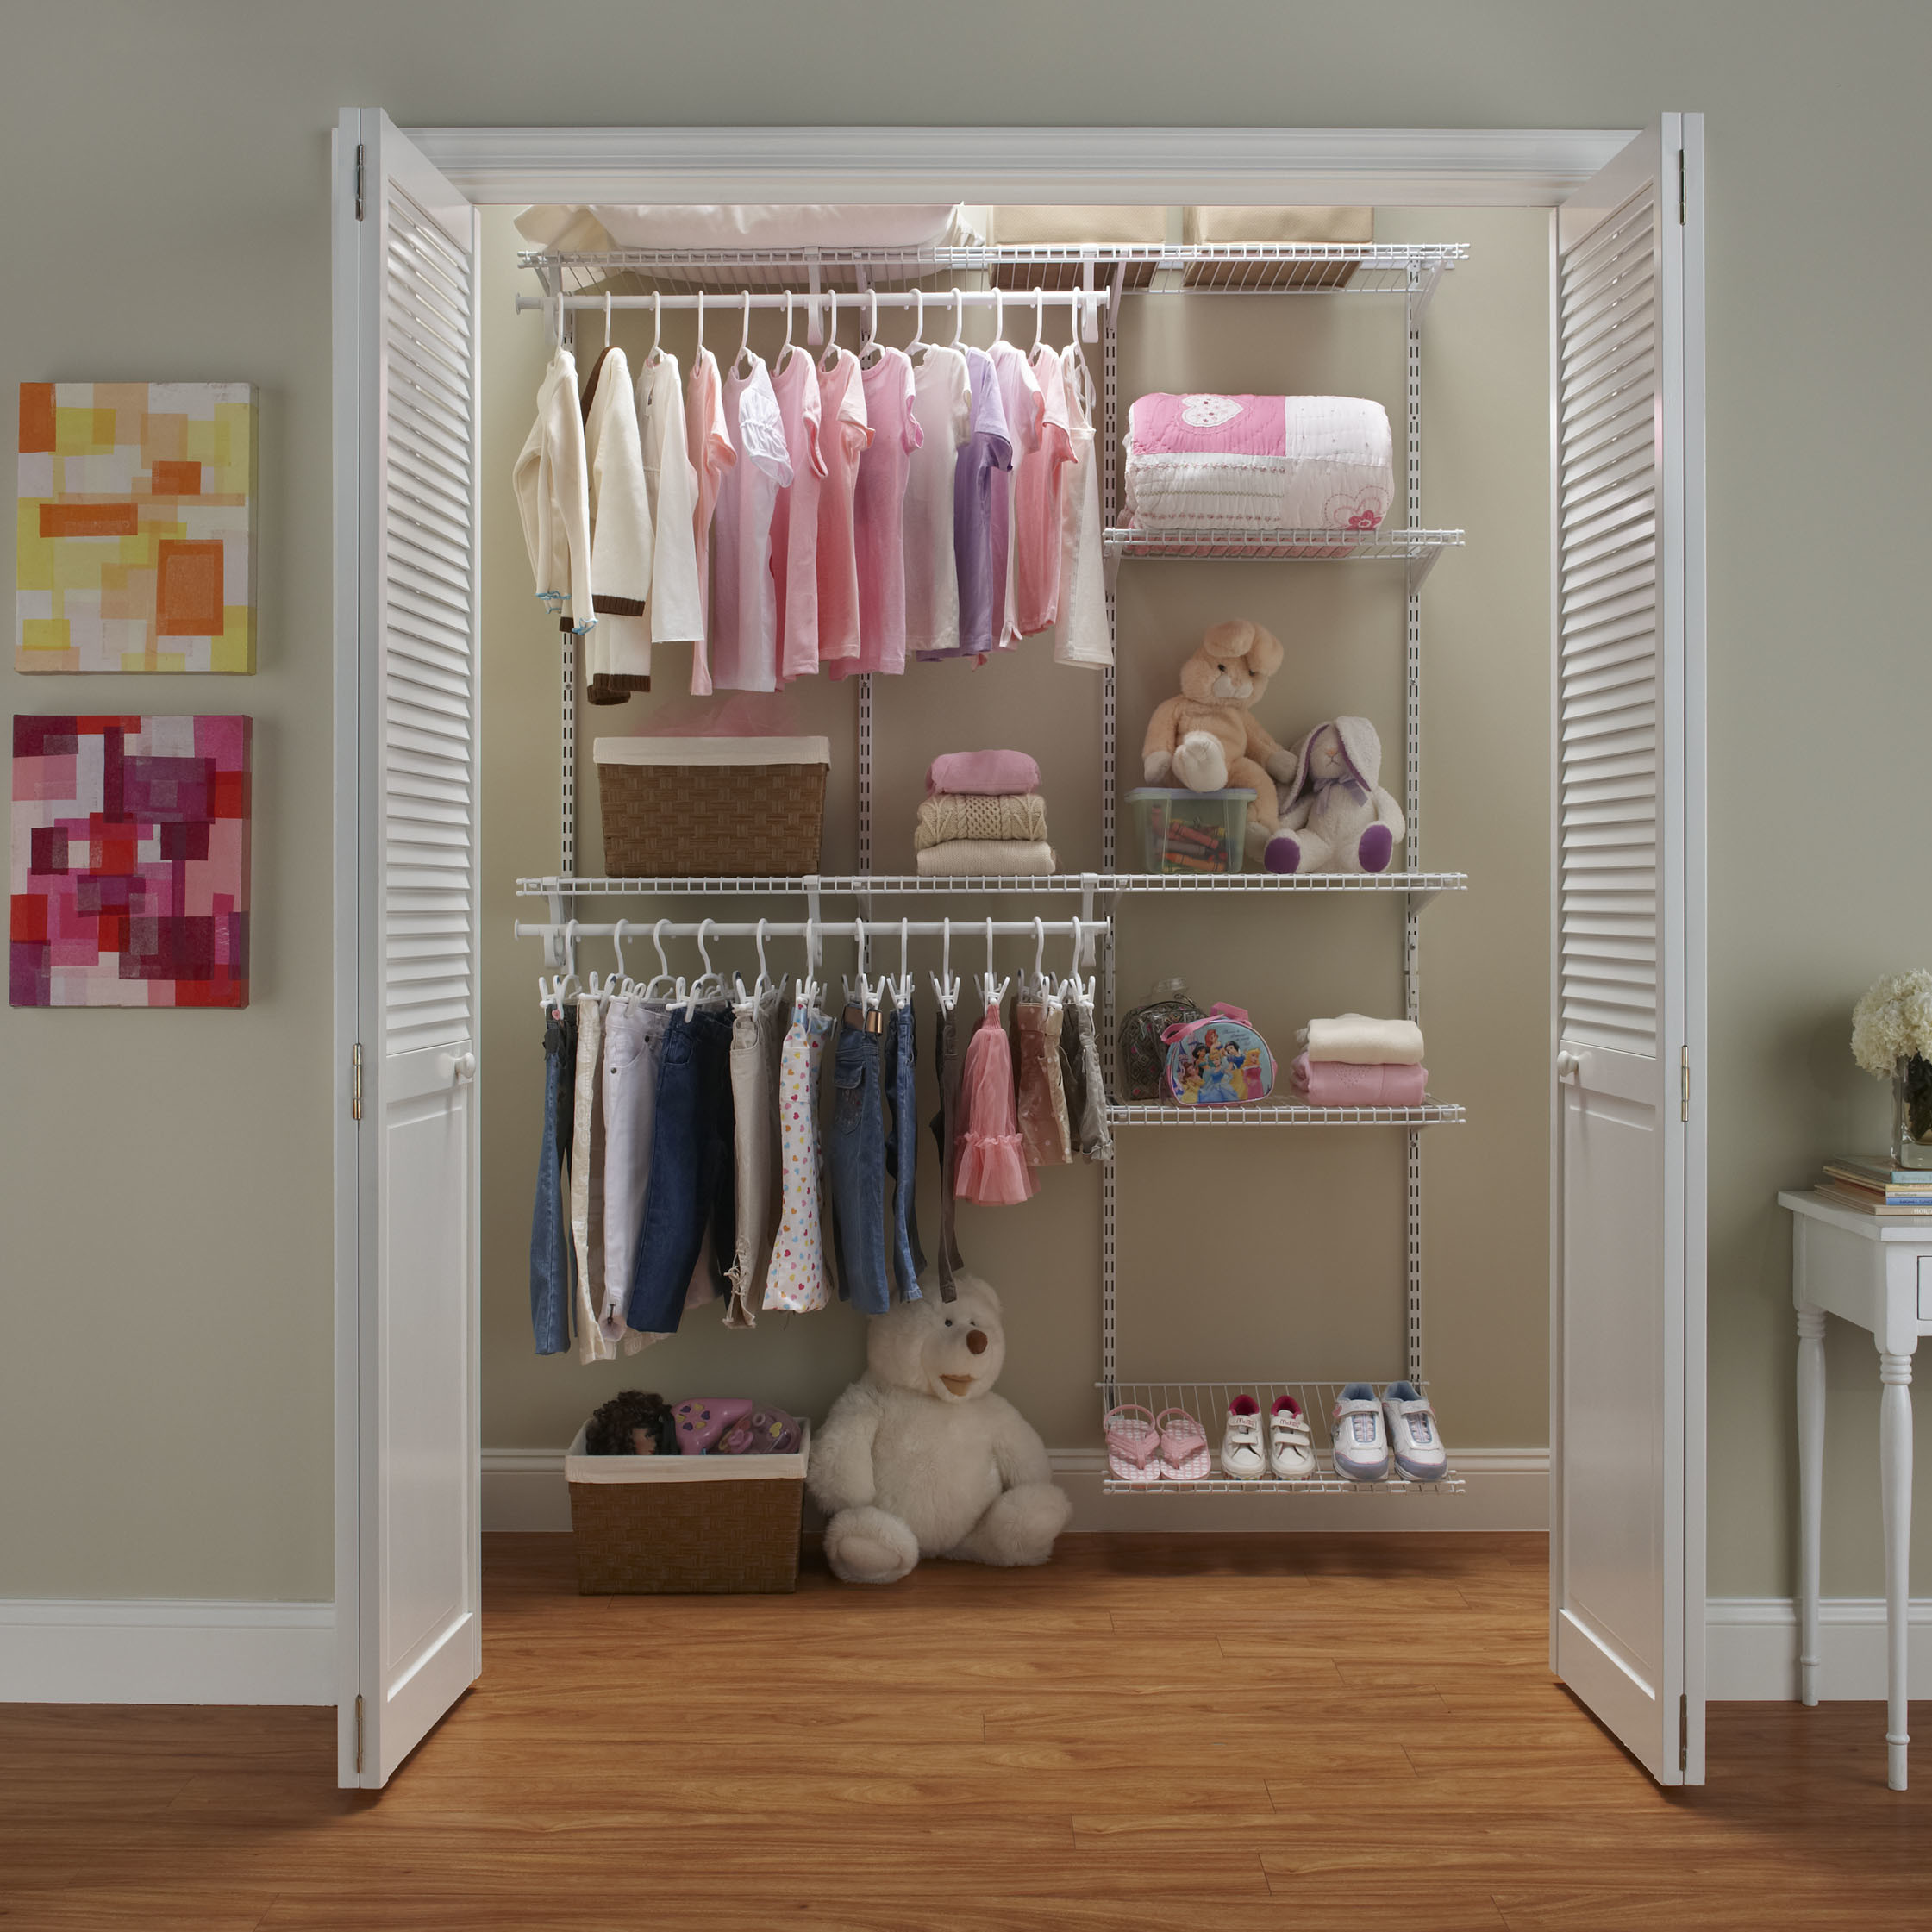 Lowes Shelving Closet | Lowes Wire Shelving | Shelf Tech System Lowes